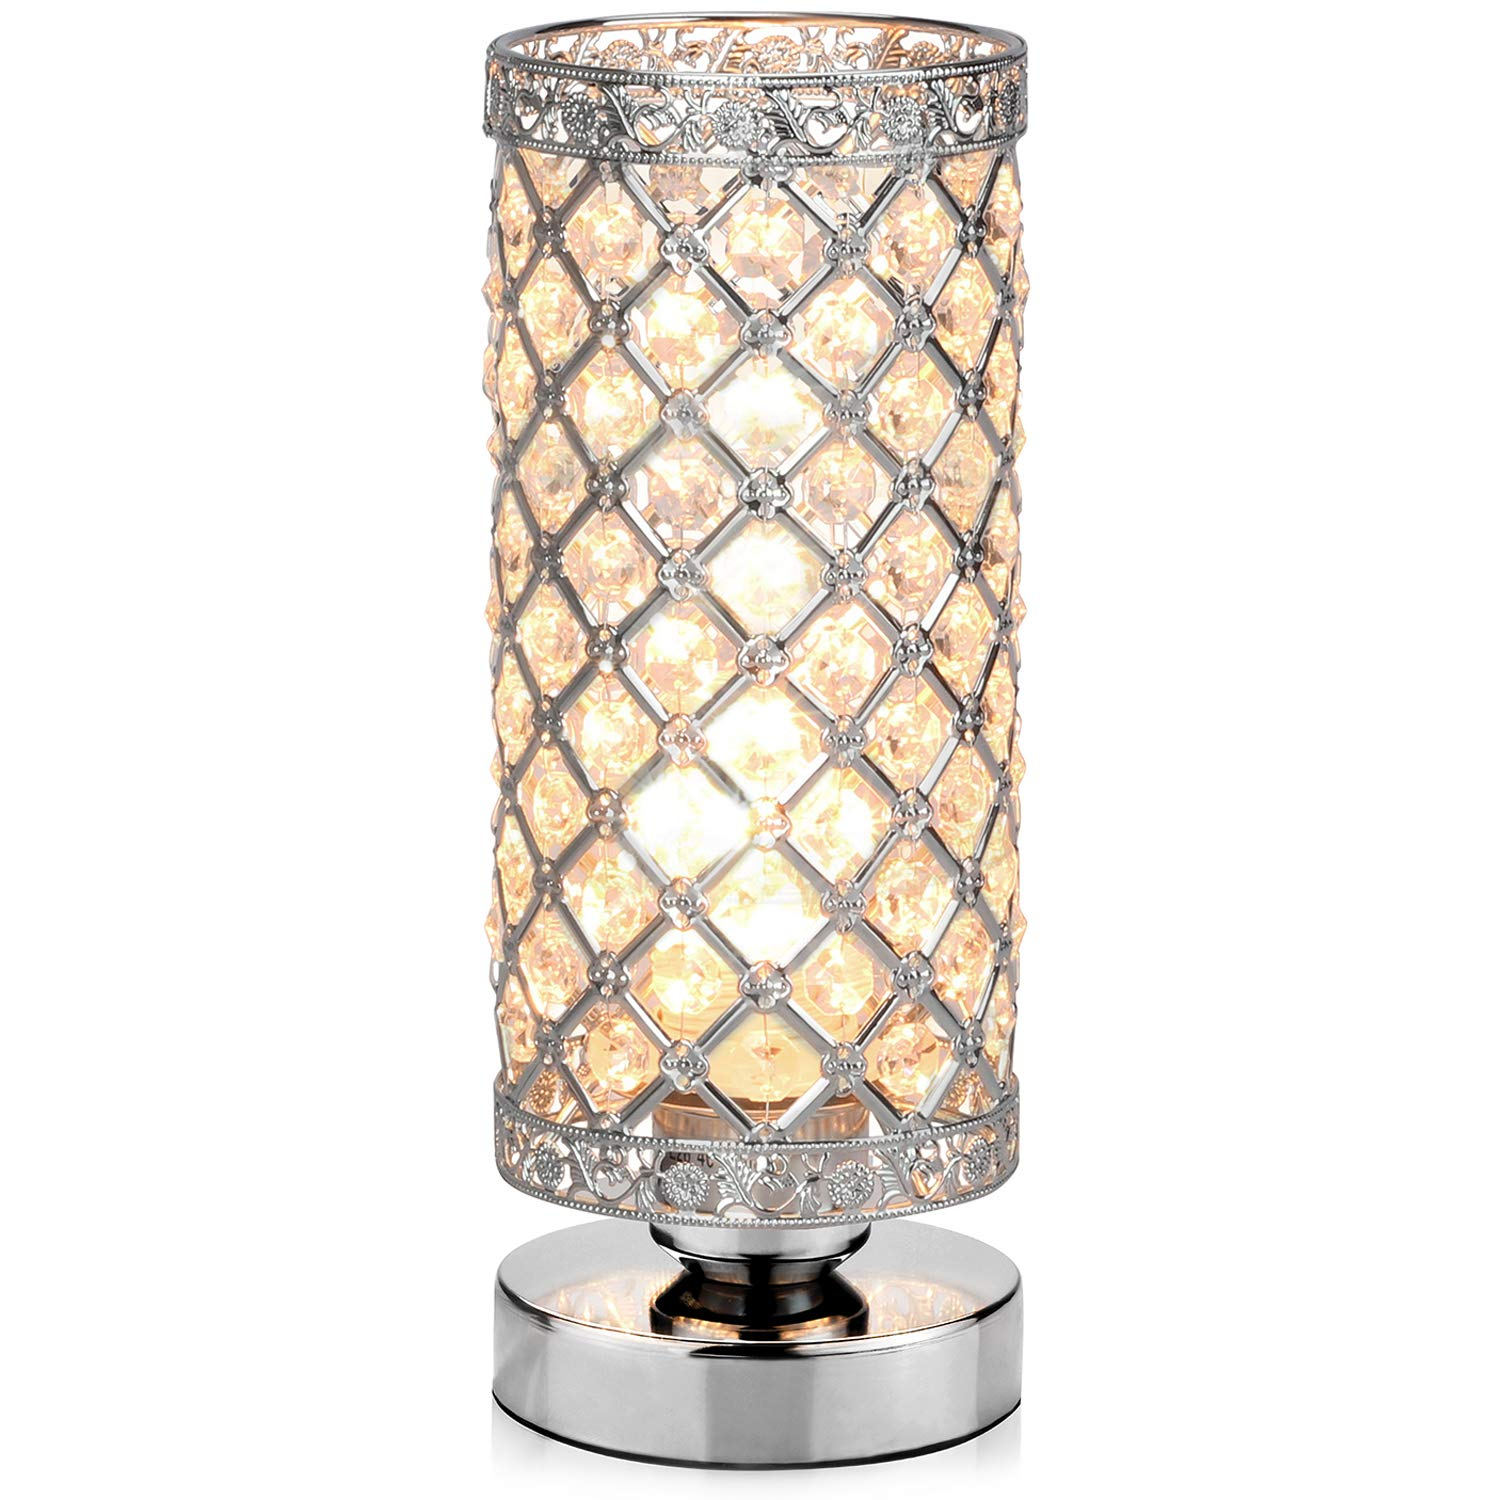 Table Lamp, Petronius Crystal Table Lamps, Decorative Bedside Nightstand Desk Lamp Shade for Bedroom, Living Room, Dining Room, Kitchen